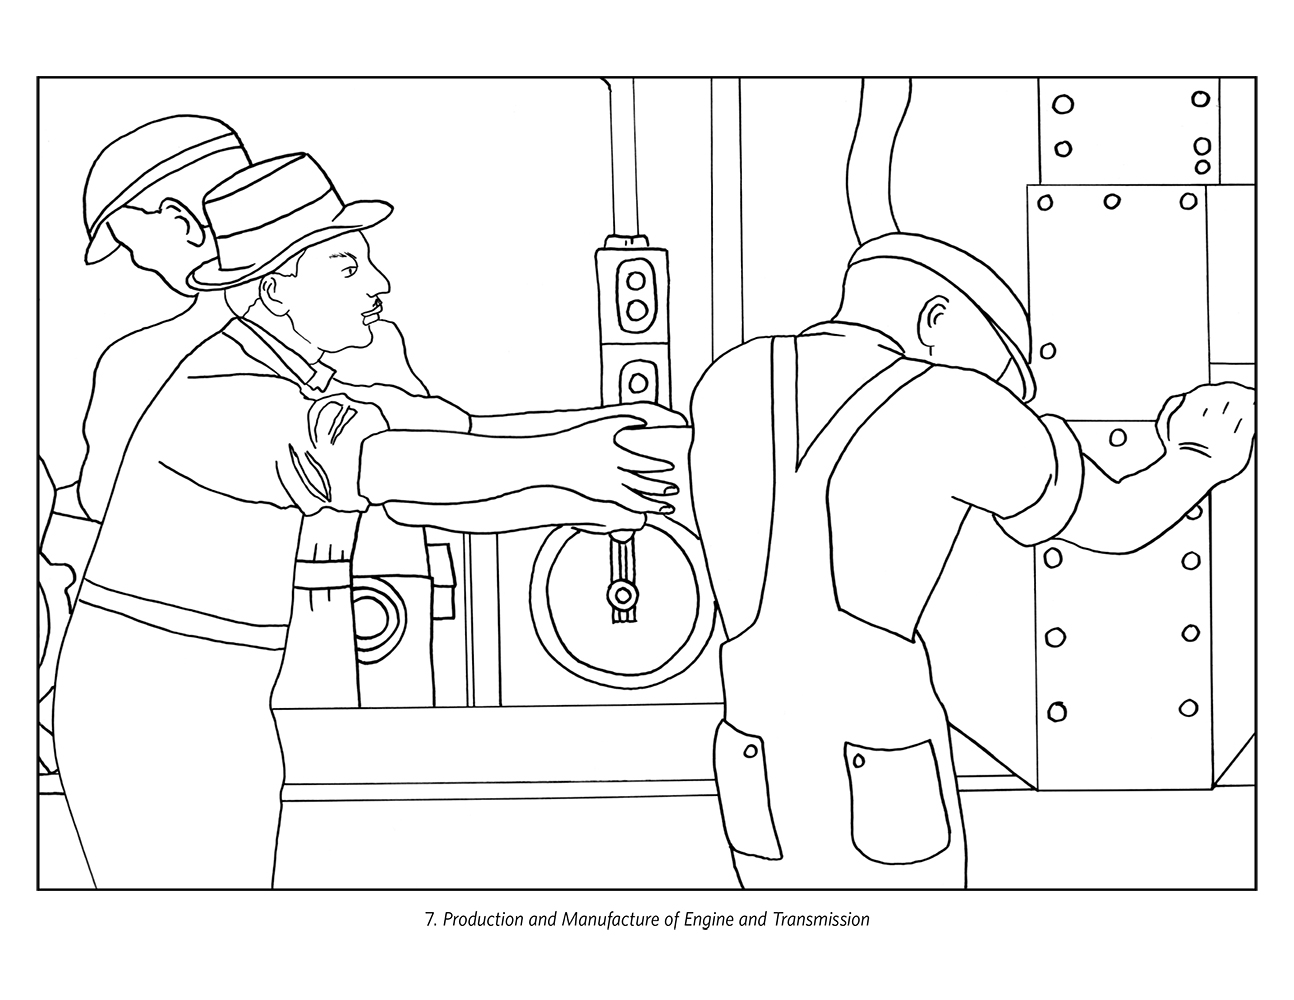 diego rivera coloring pages - photo#4